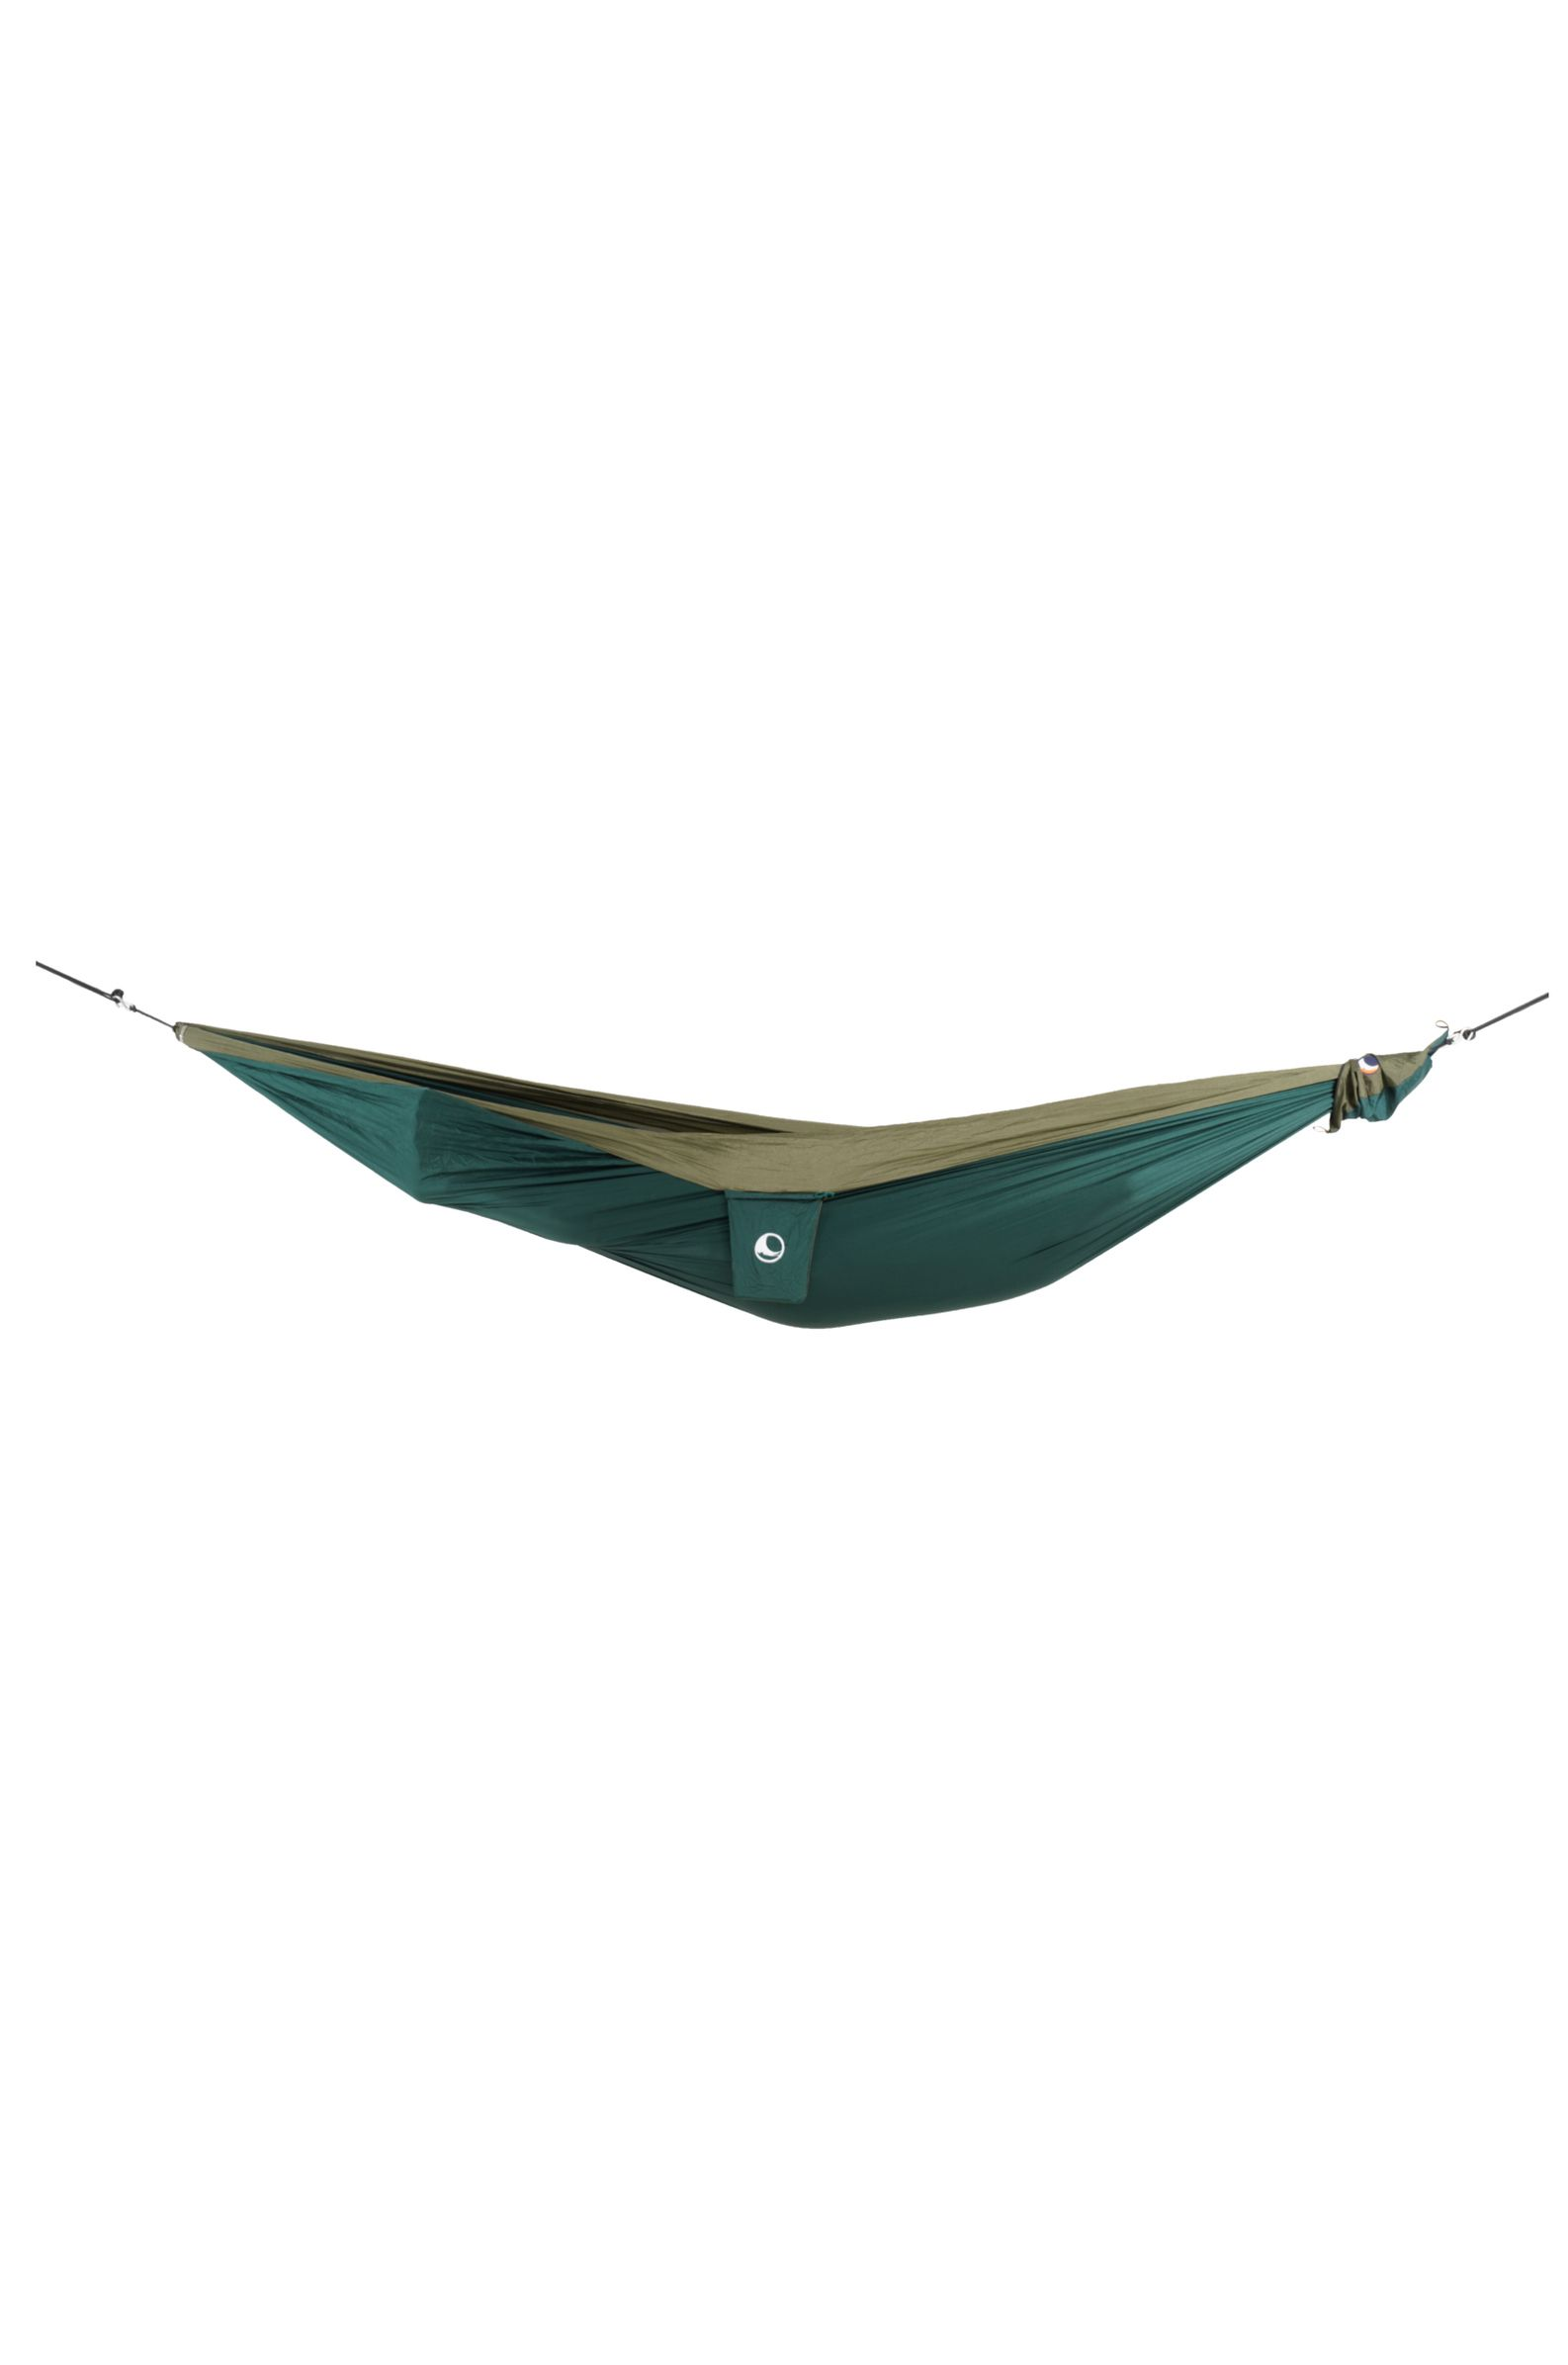 DV Ticket To The Moon KING SIZE HAMMOCK Forest Green/Army Green